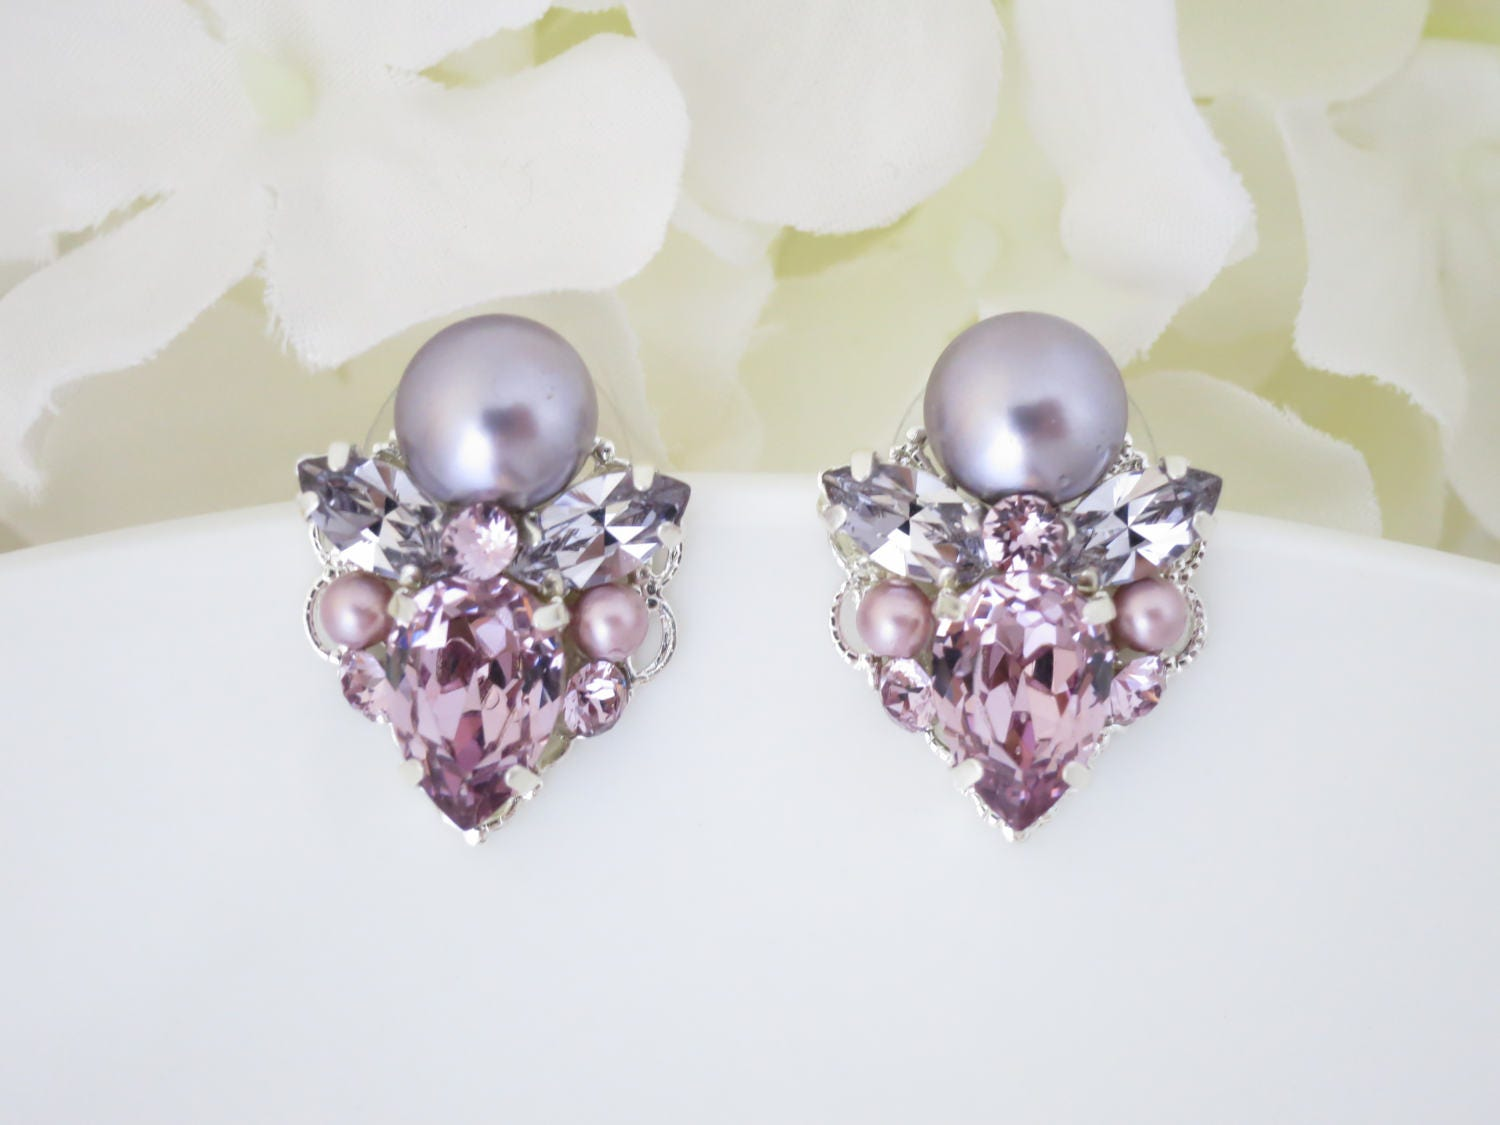 Light amethyst wedding earring, Swarovski crystal and pearl post earring, Purple and mauve bridal earring, Bridesmaid earring